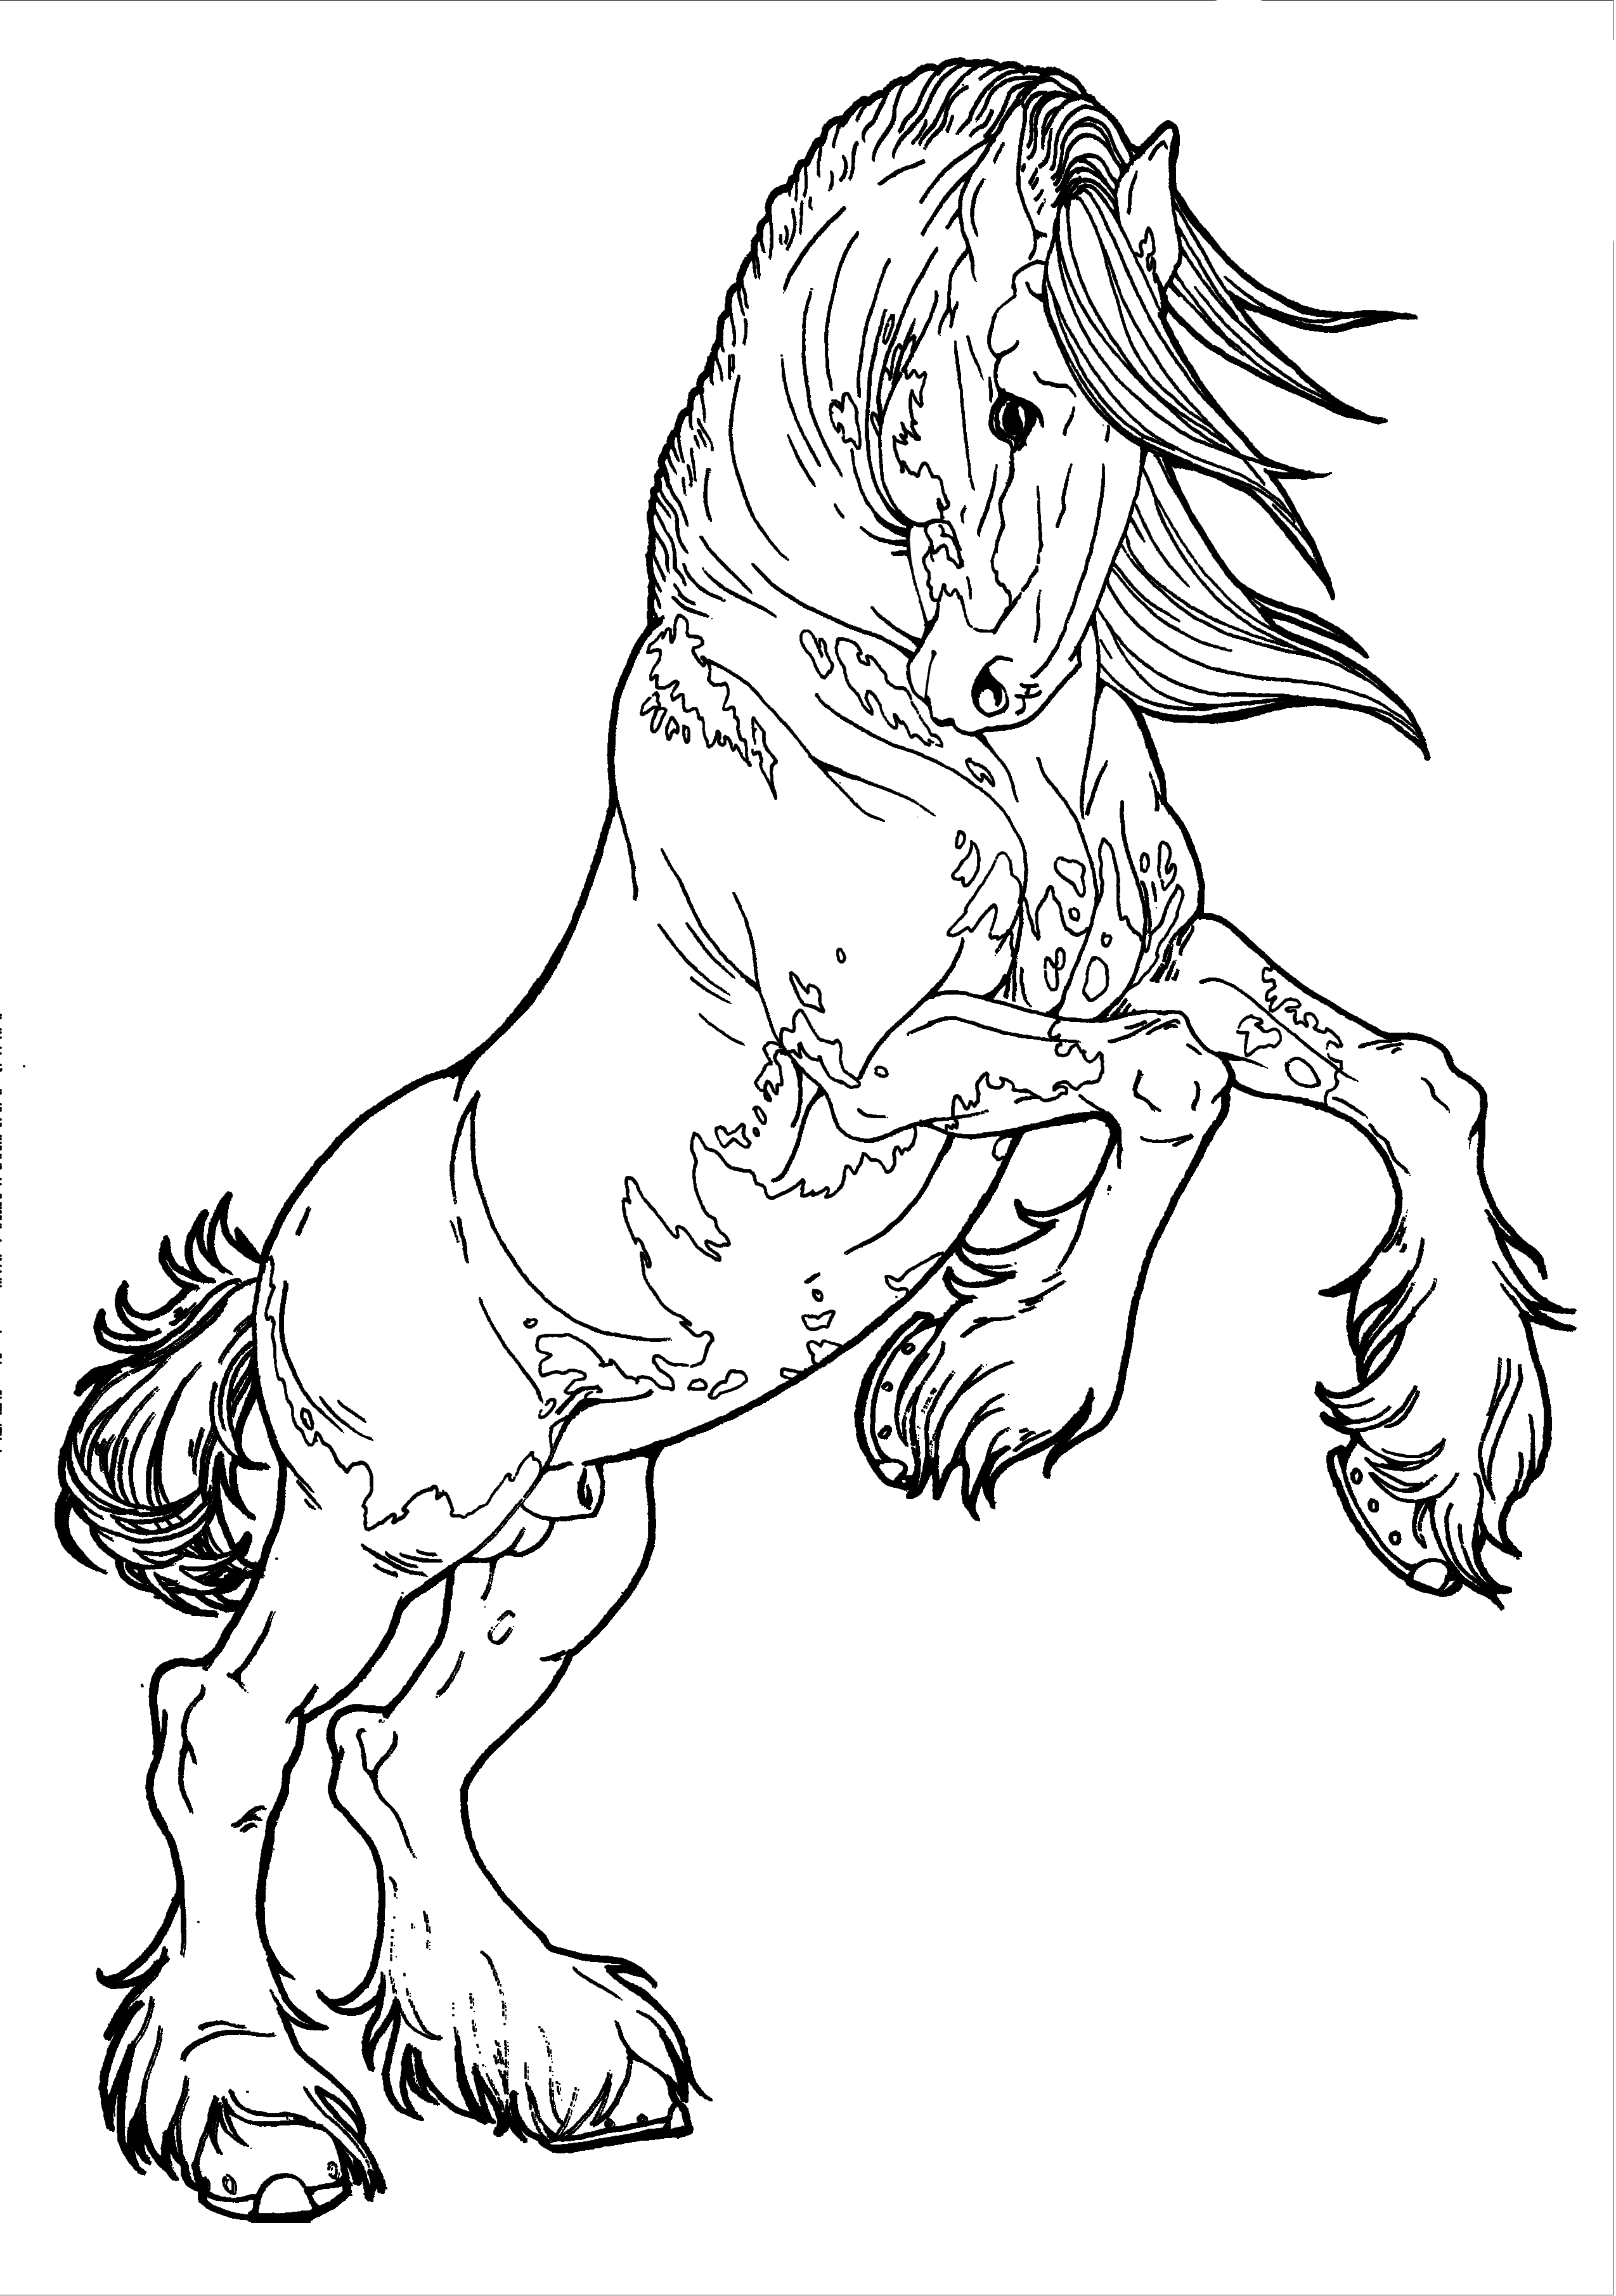 Clydesdale coloring #2, Download drawings